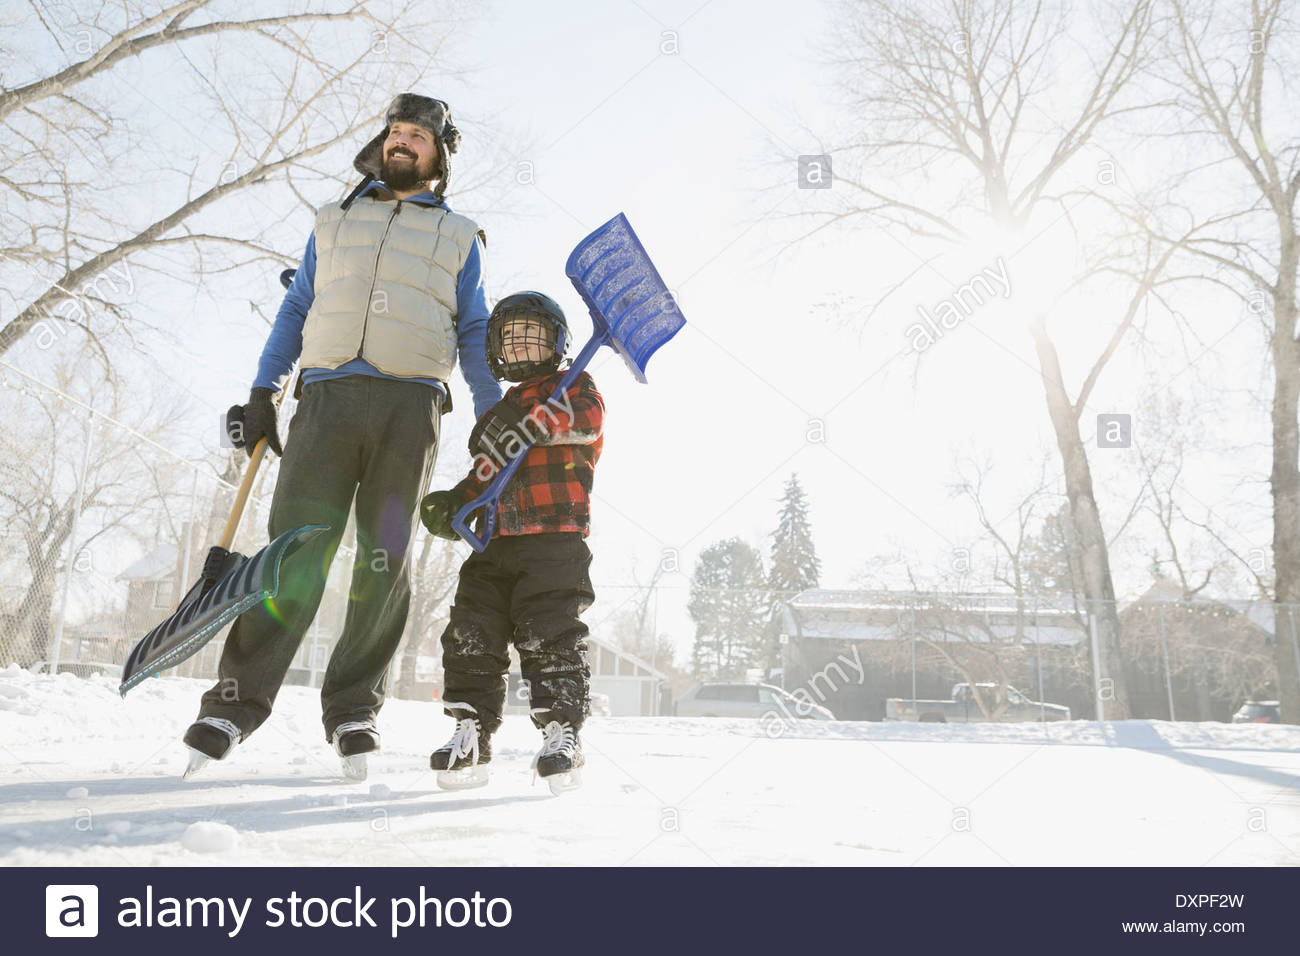 Father and son holding snow shovels on ice rink - Stock Image